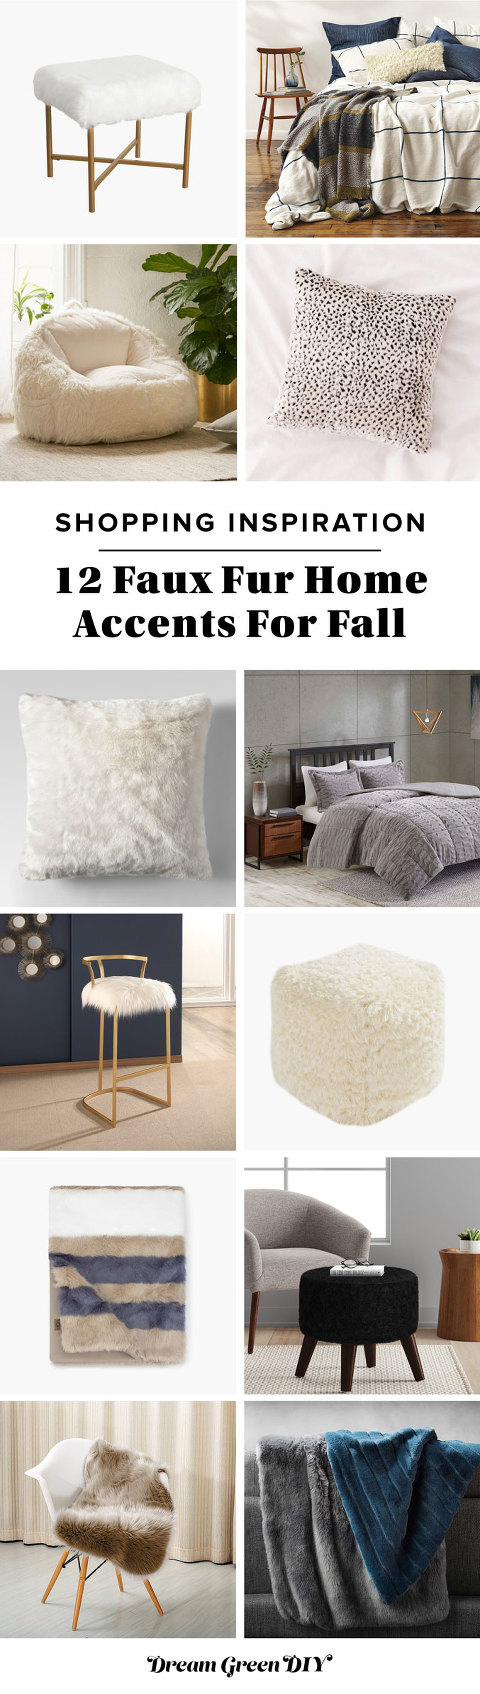 12 Faux Fur Home Accents For Fall